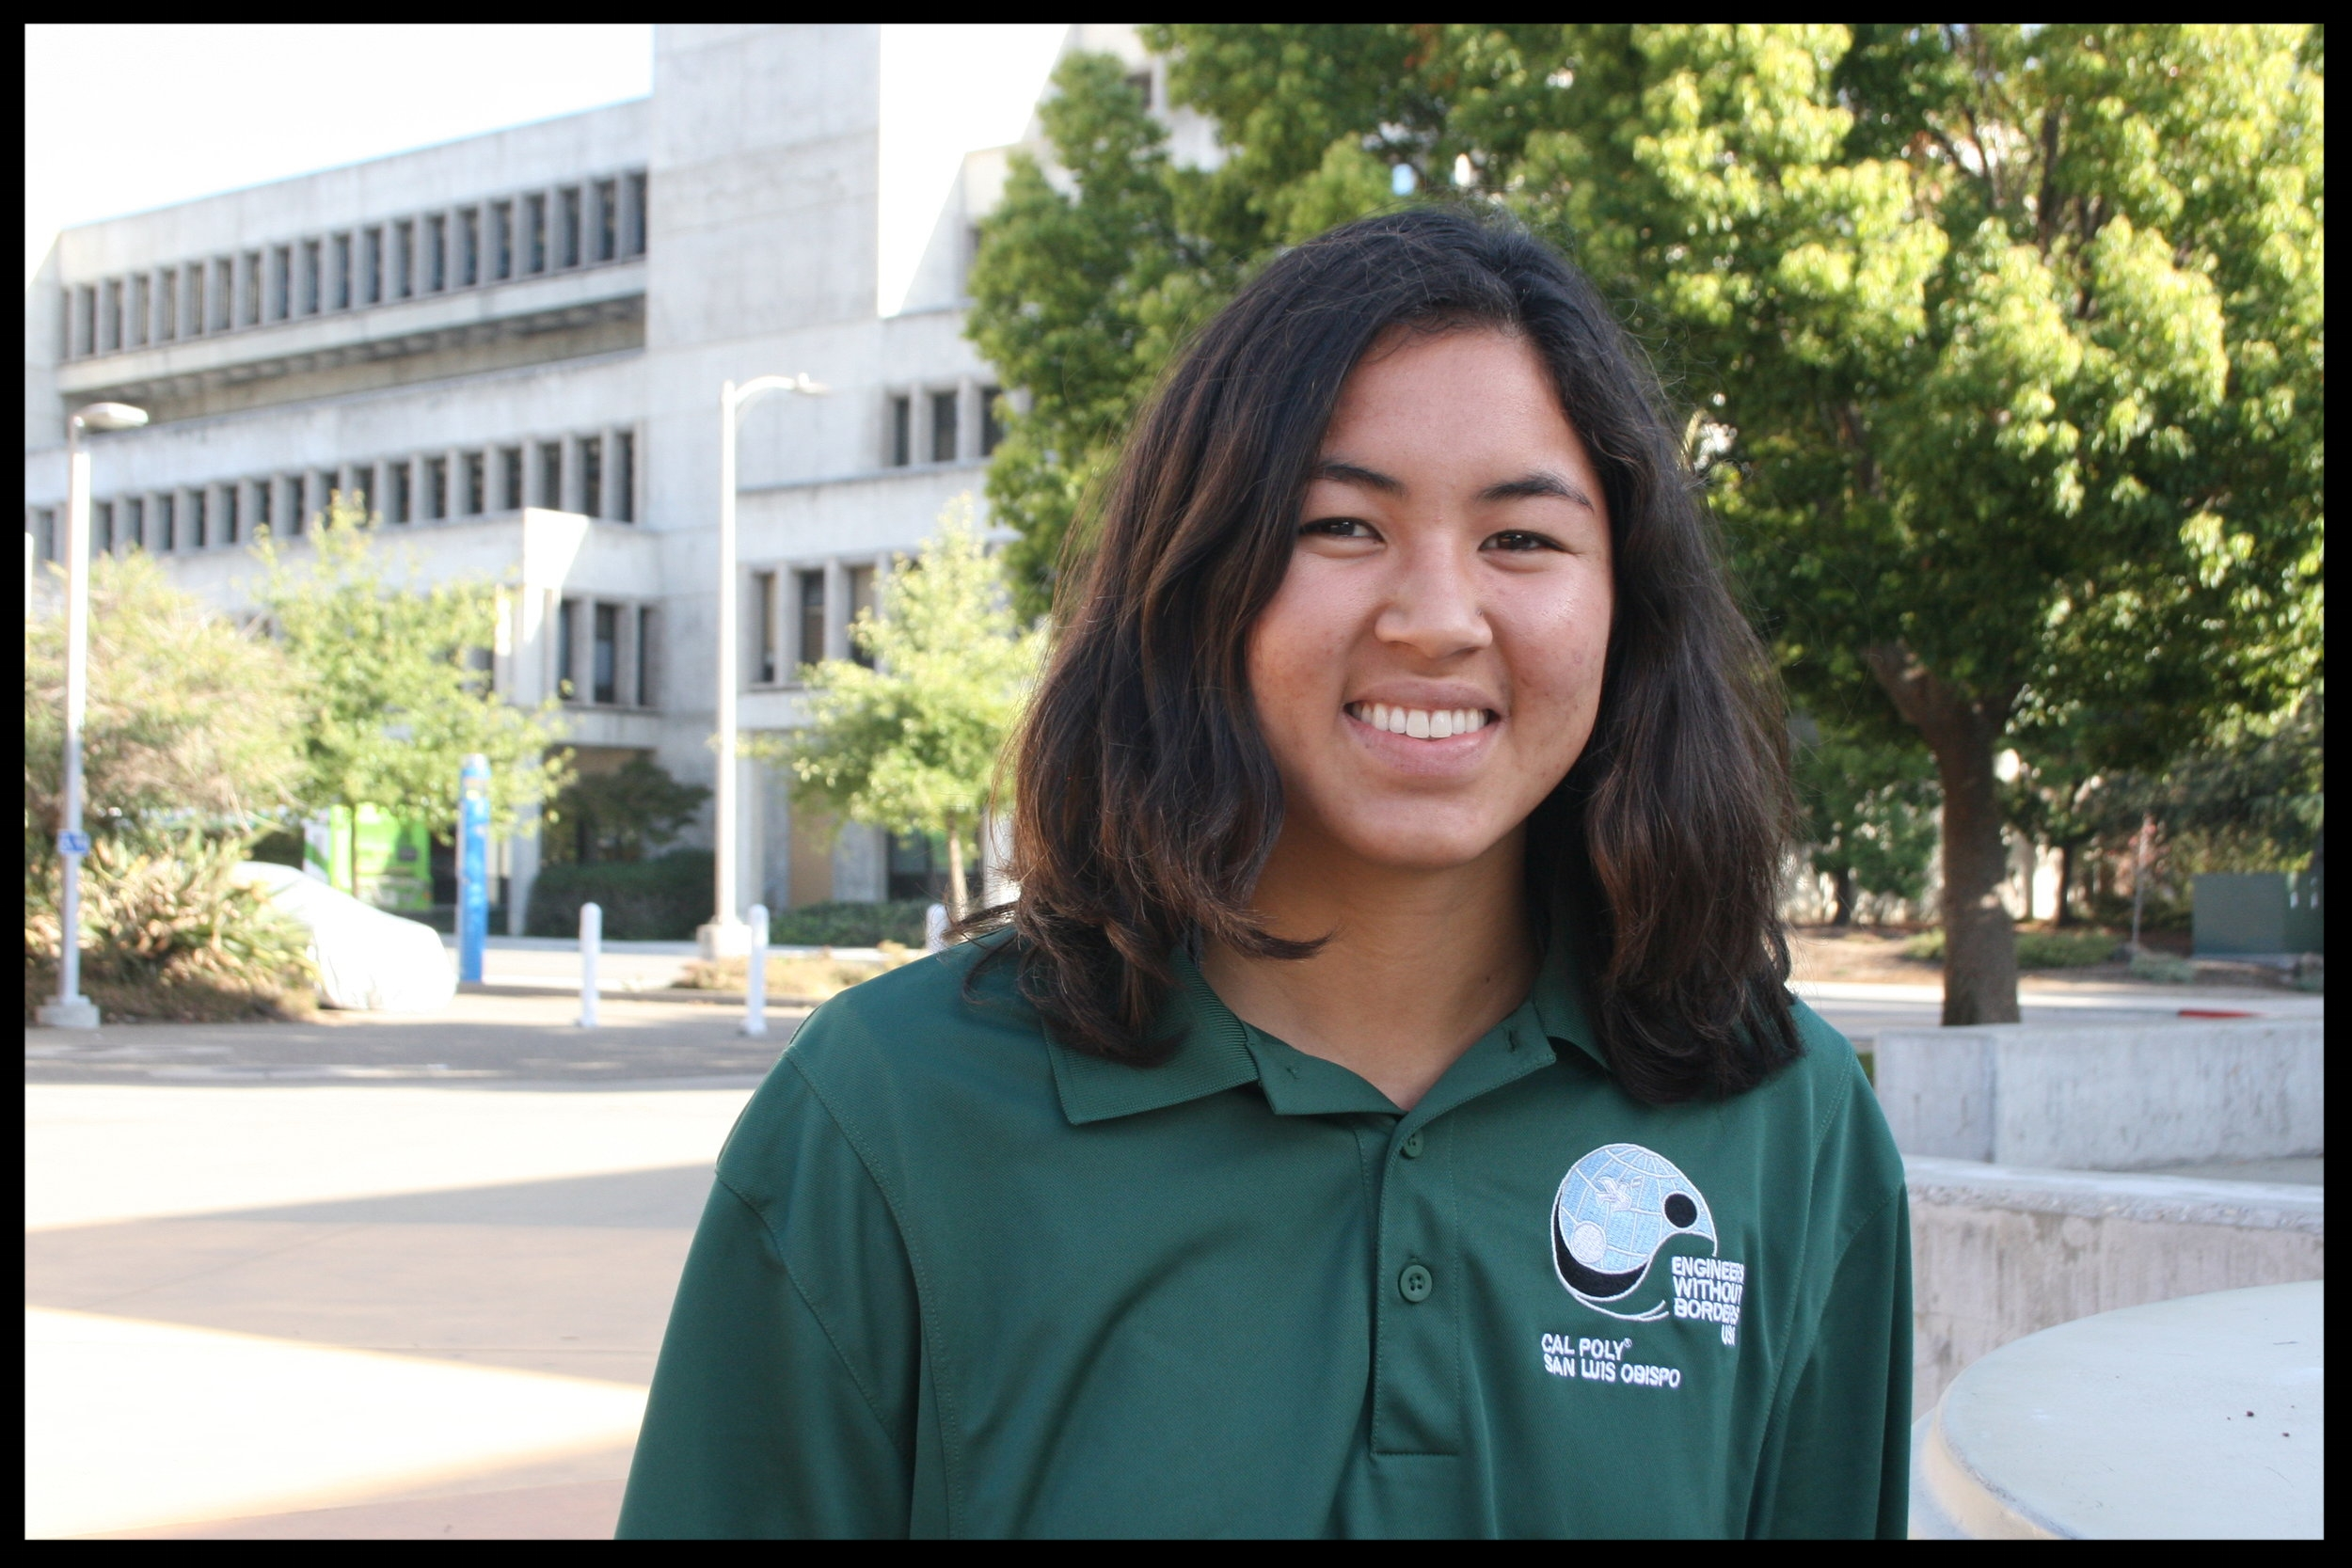 Zoe Lam - Fiji Team Project Manager    Grad 2021 - Mechanical Engineering   Zoe is a second year Mechanical Engineering student from Los Gatos, CA (Bay Area). She joined EWB because she wants to use her education to help others. Her favorite memory of EWB is going to Fiji, learning about the culture, living on island time, drinking out of coconuts and having an overall very successful second assessment trip. When Zoe isn't doing something for EWB, she loves to cook (roasted vegetables are her favorite!), talk about going surfing but never going because she gets too cold and doesn't know how, and getting lost in the woods!